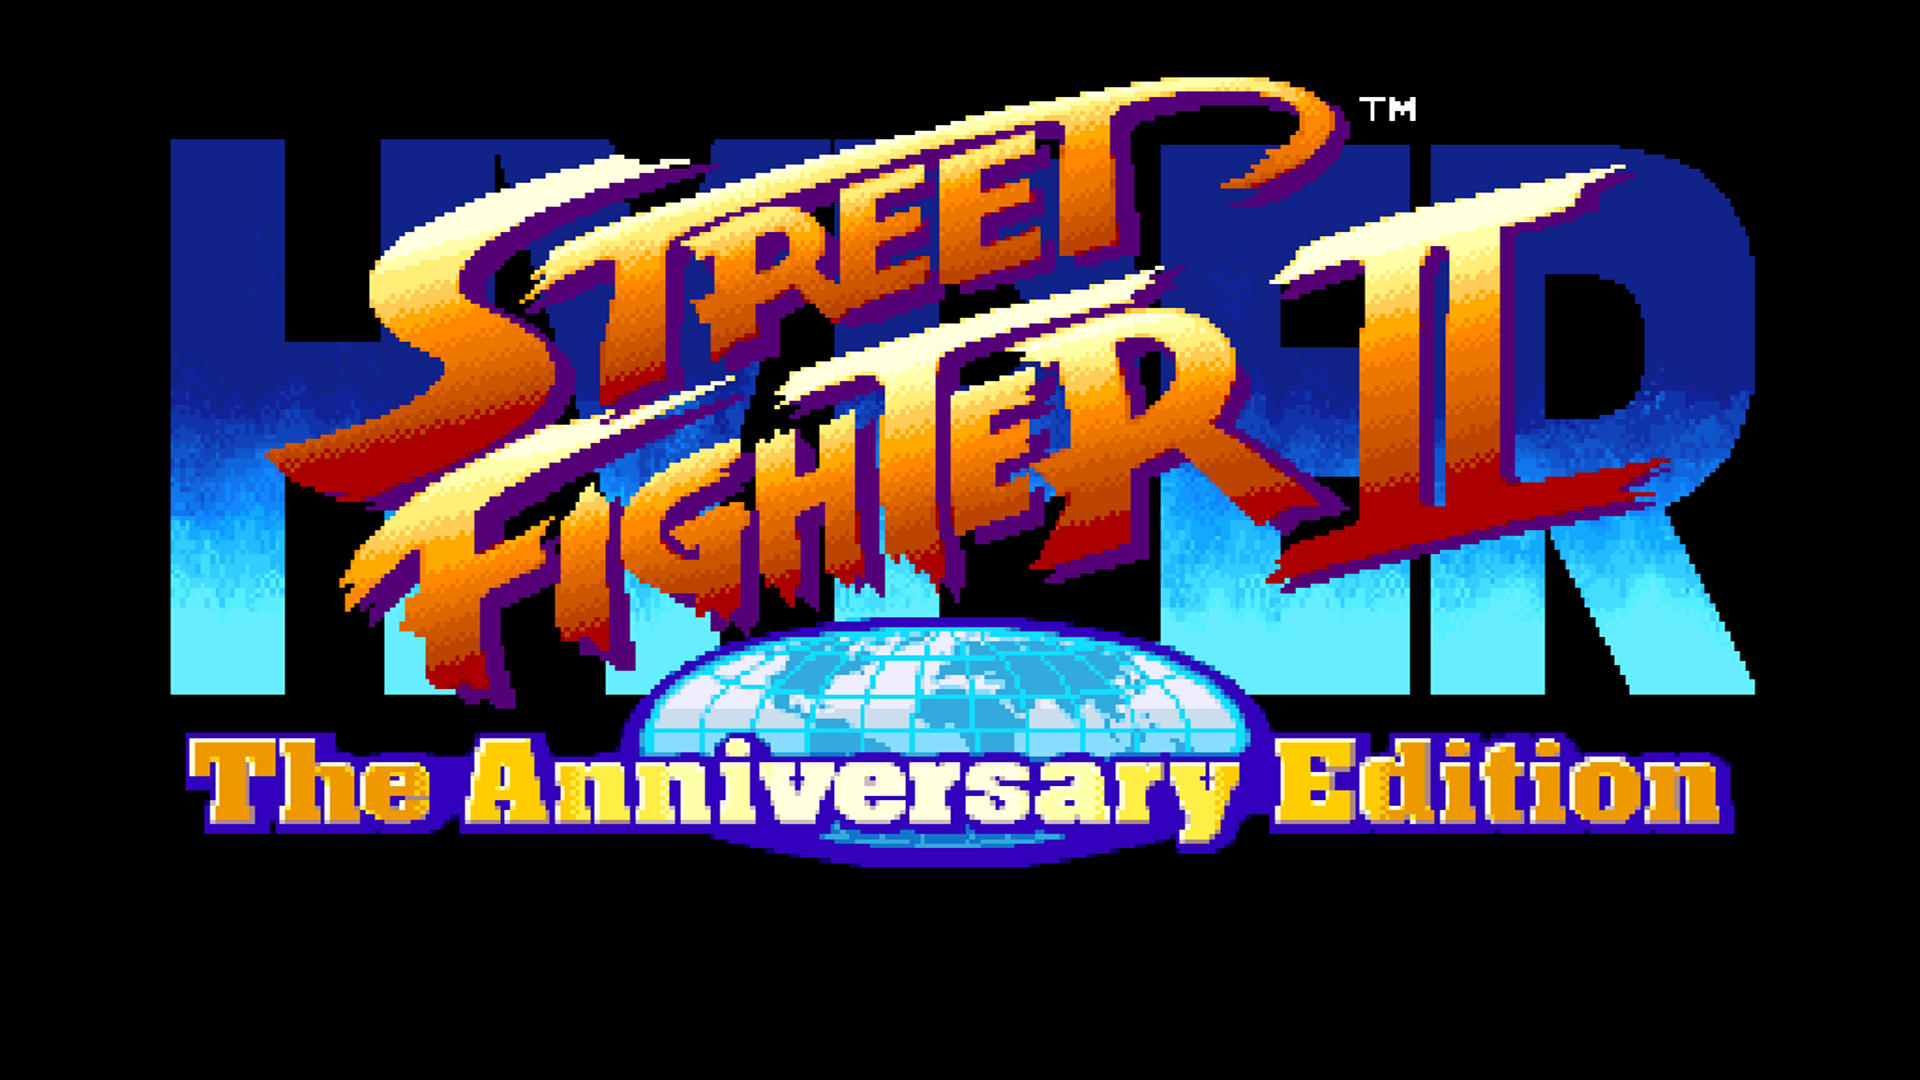 Hyper Street Fighter II: The Anniversary Edition Logo